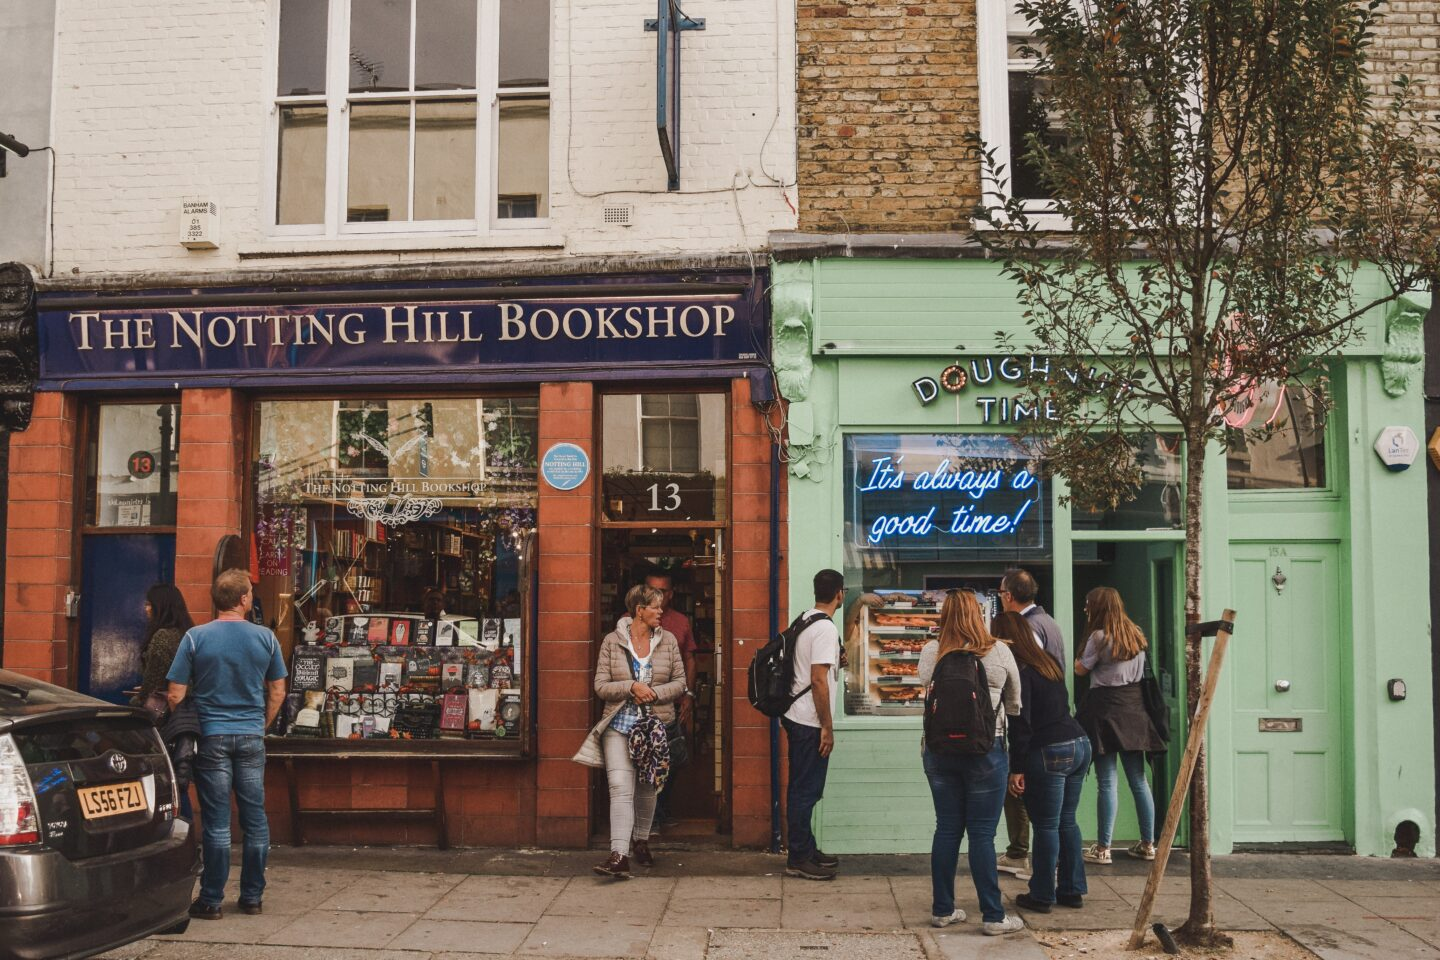 Notting Hill in London should be on your bucket list